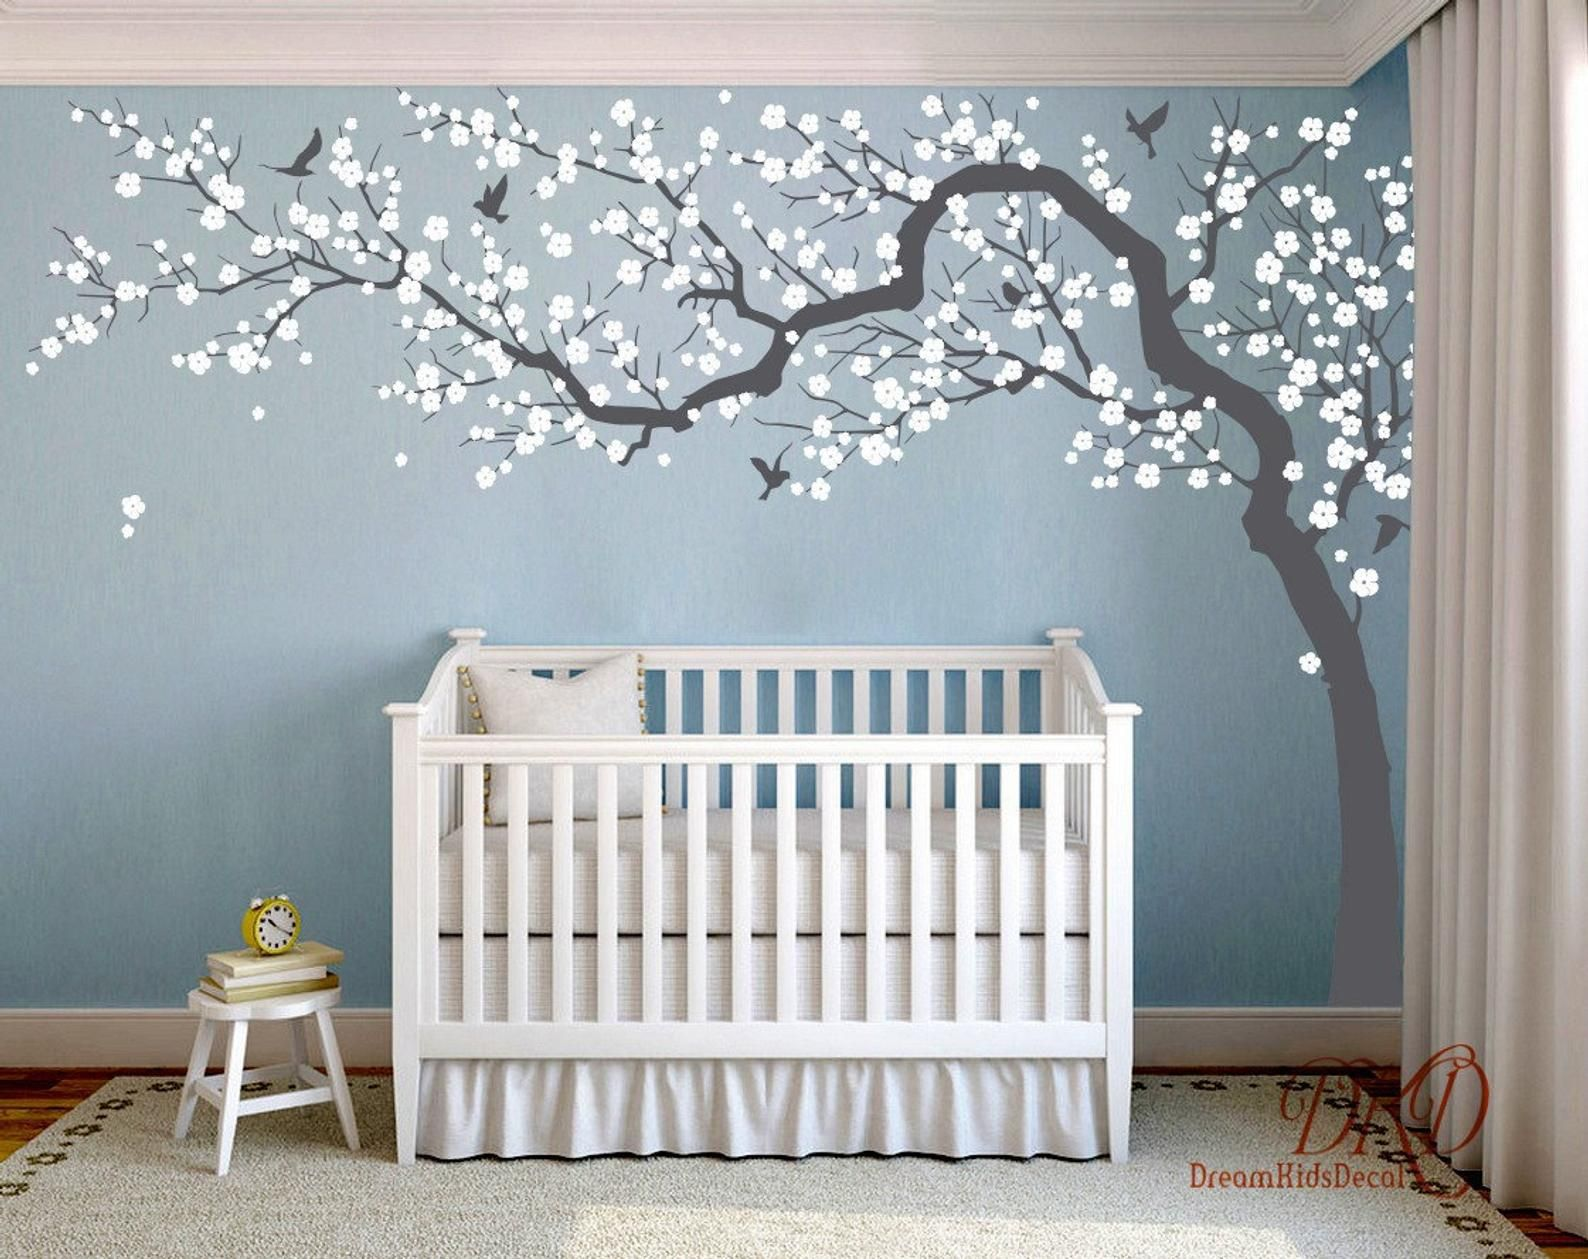 Wall Decal Charming Pink Blossom Tree Cherry Blossom Tree Etsy In 2021 Pink Blossom Tree Nursery Mural Nursery Wall Decals